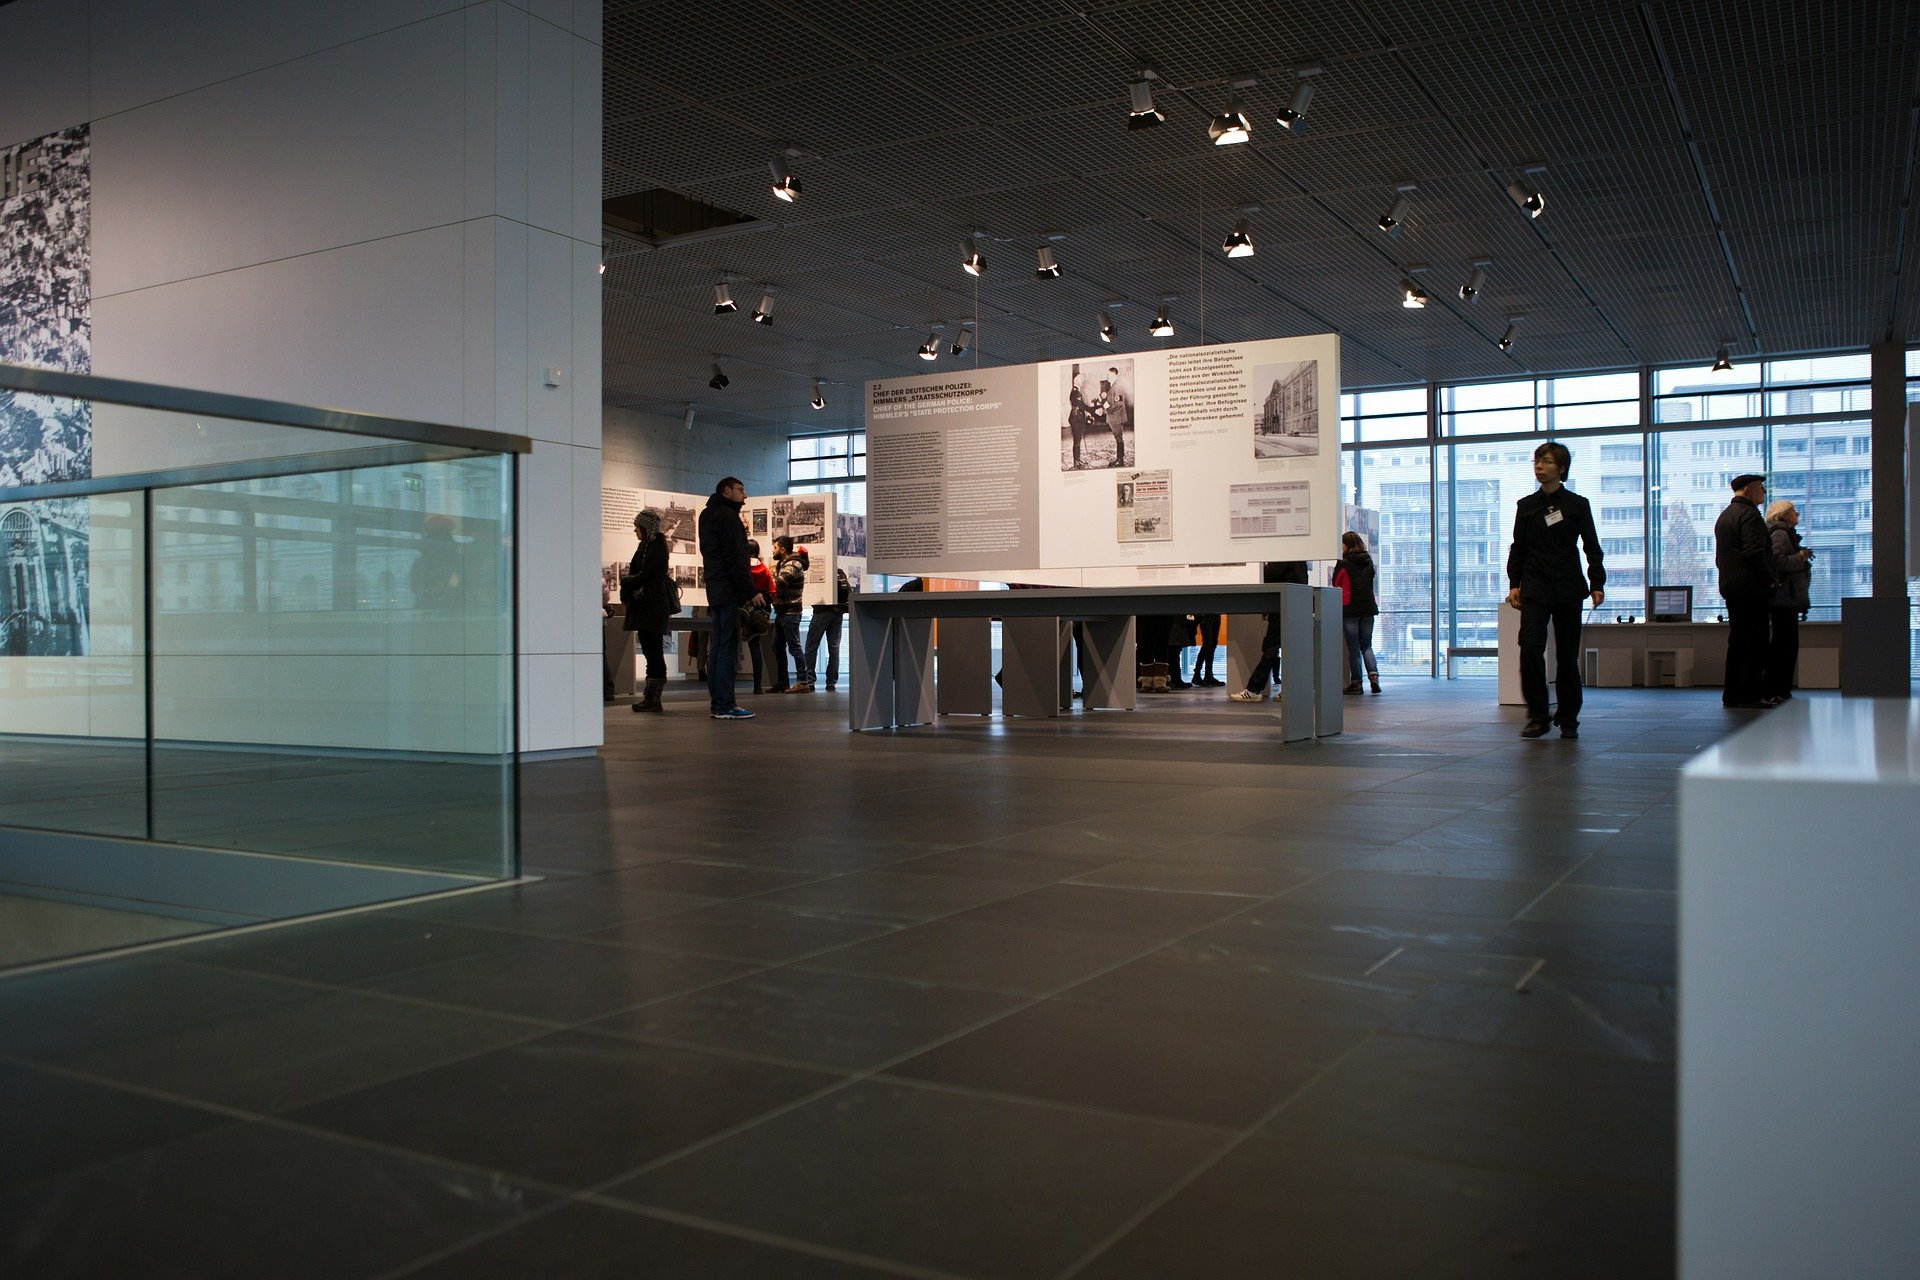 Image of the interior of the Topography of Terror Museum